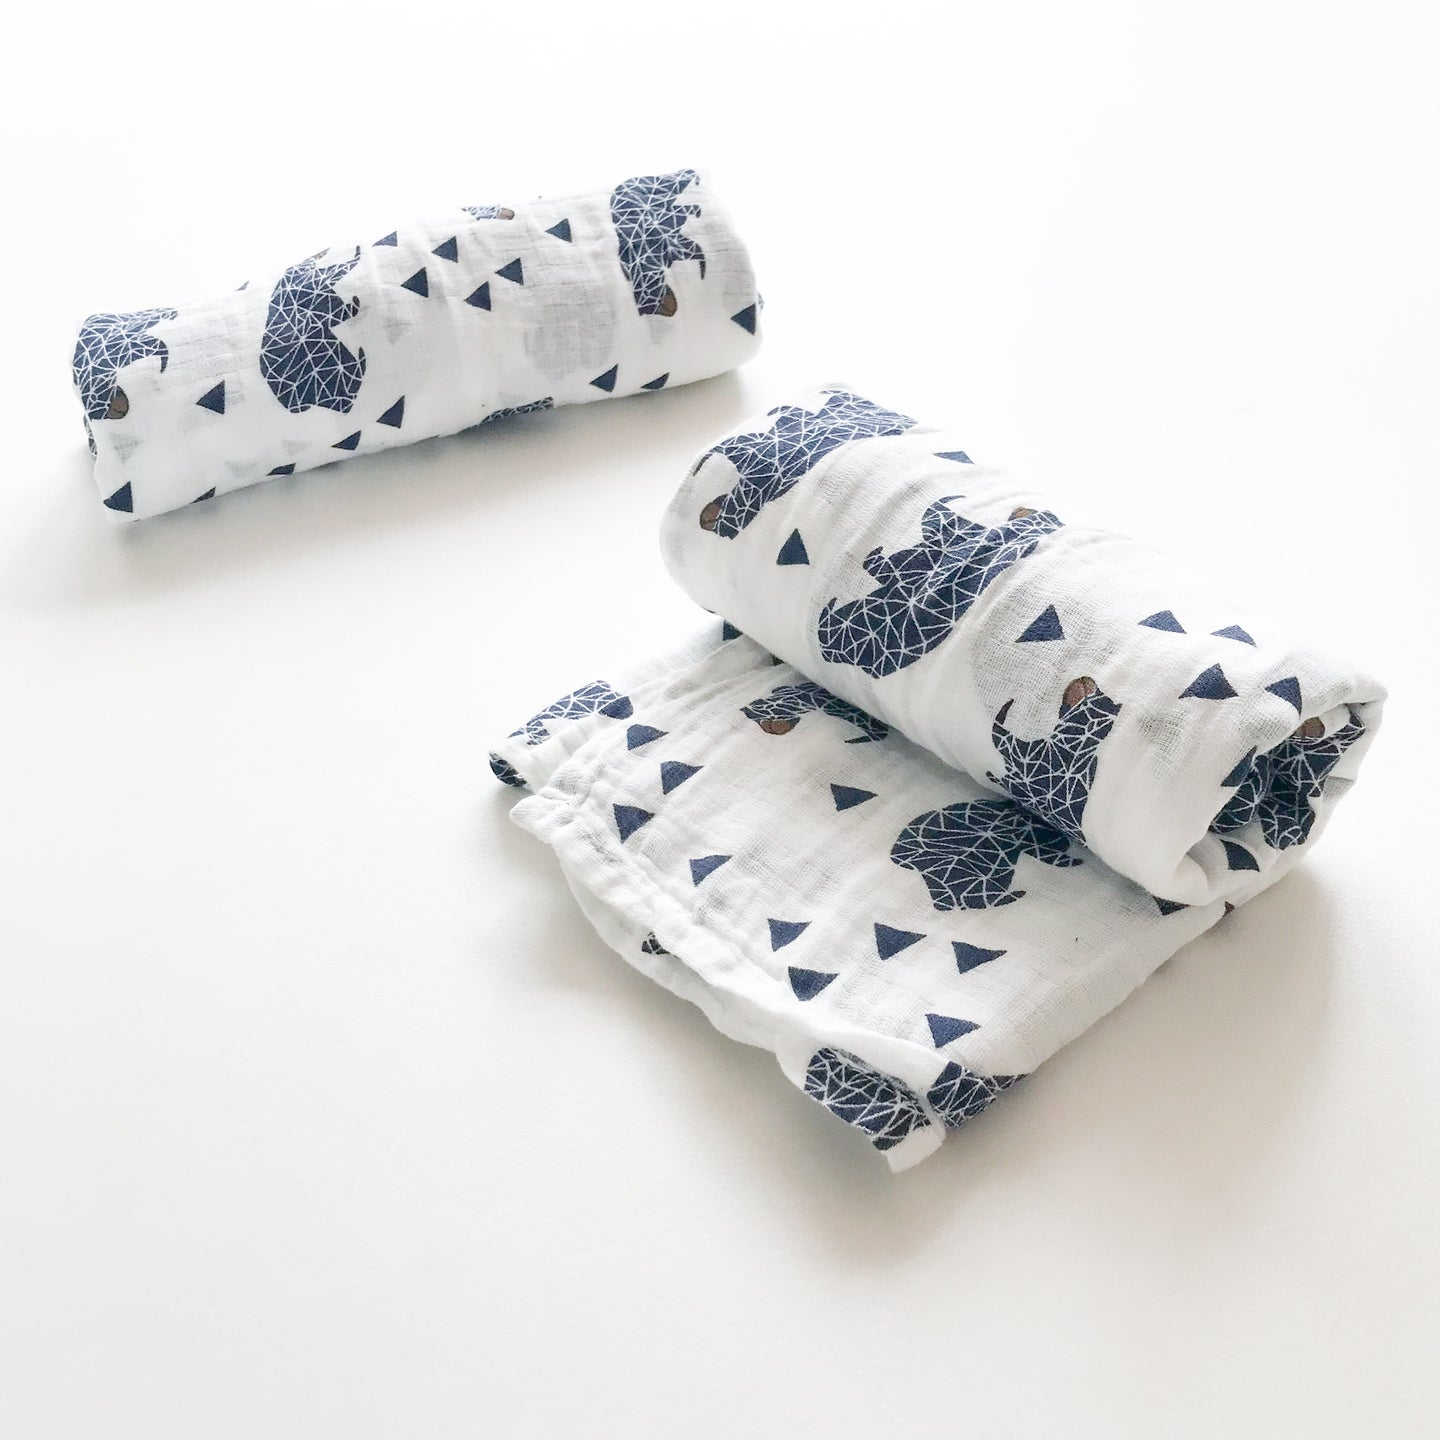 Extra large 120x120cm 100% cotton muslin geometric bear and triangle swaddle blankets